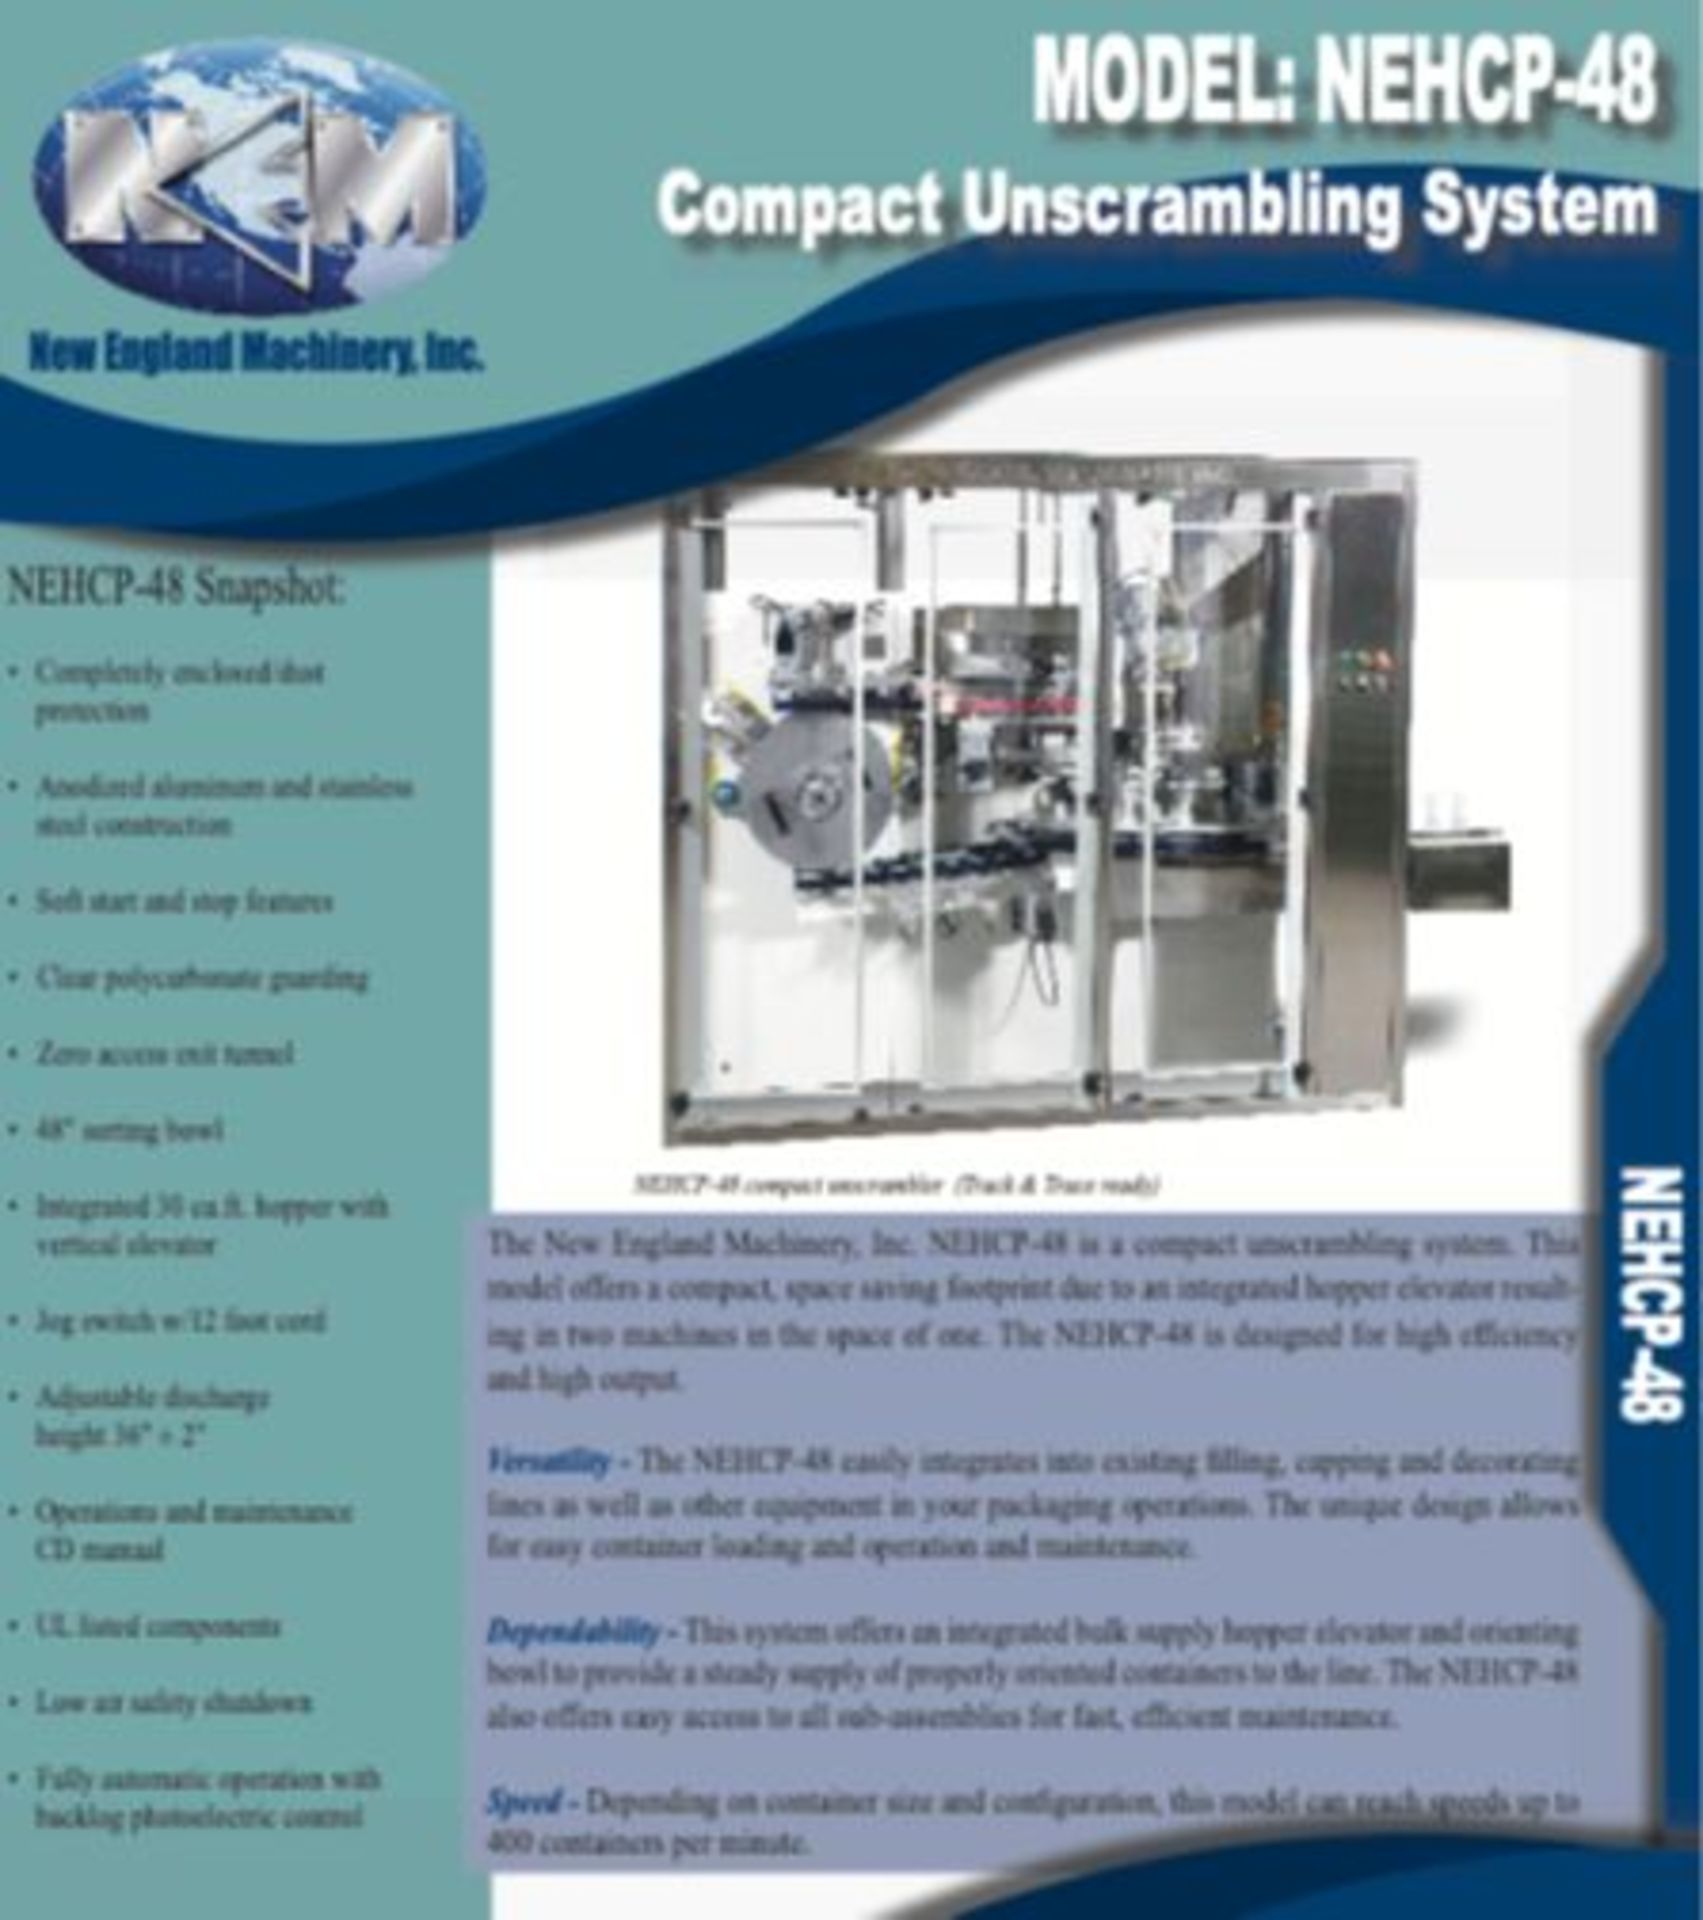 14 Head Dry Products Packaging Line - Ohlsen Weigher - New England Unscrambler - Conveyors - Enercon - Image 5 of 6